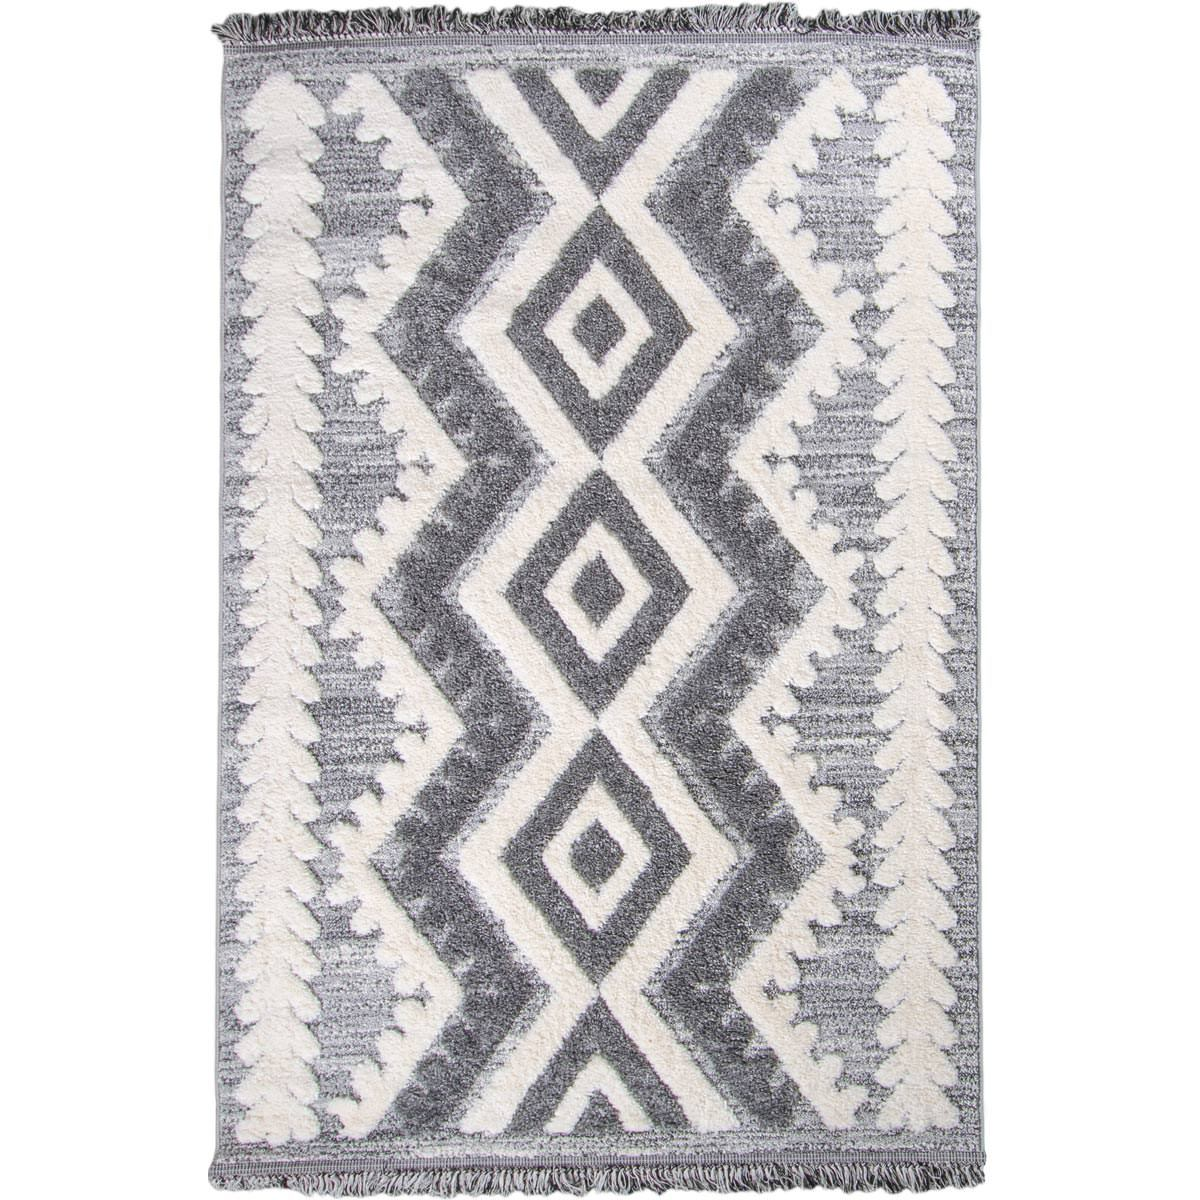 Atlas Rug 08 Grey Runner - Fringes 1